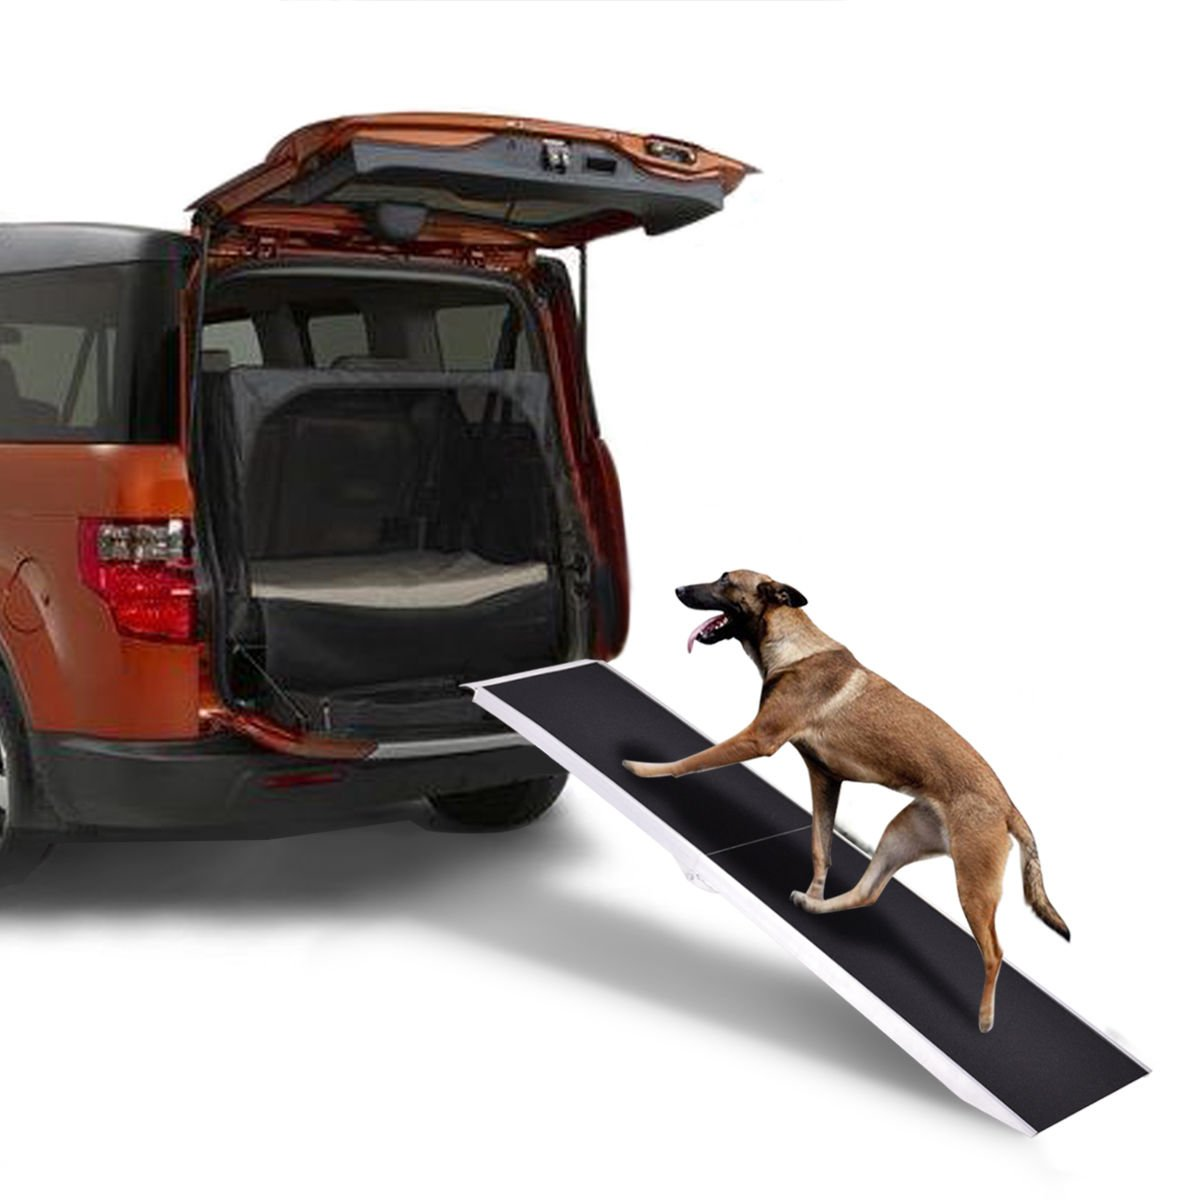 8Ft Portable Aluminum Folding Pet Paw Safe Dog Ramp Ladder Incline Car Truck SUV